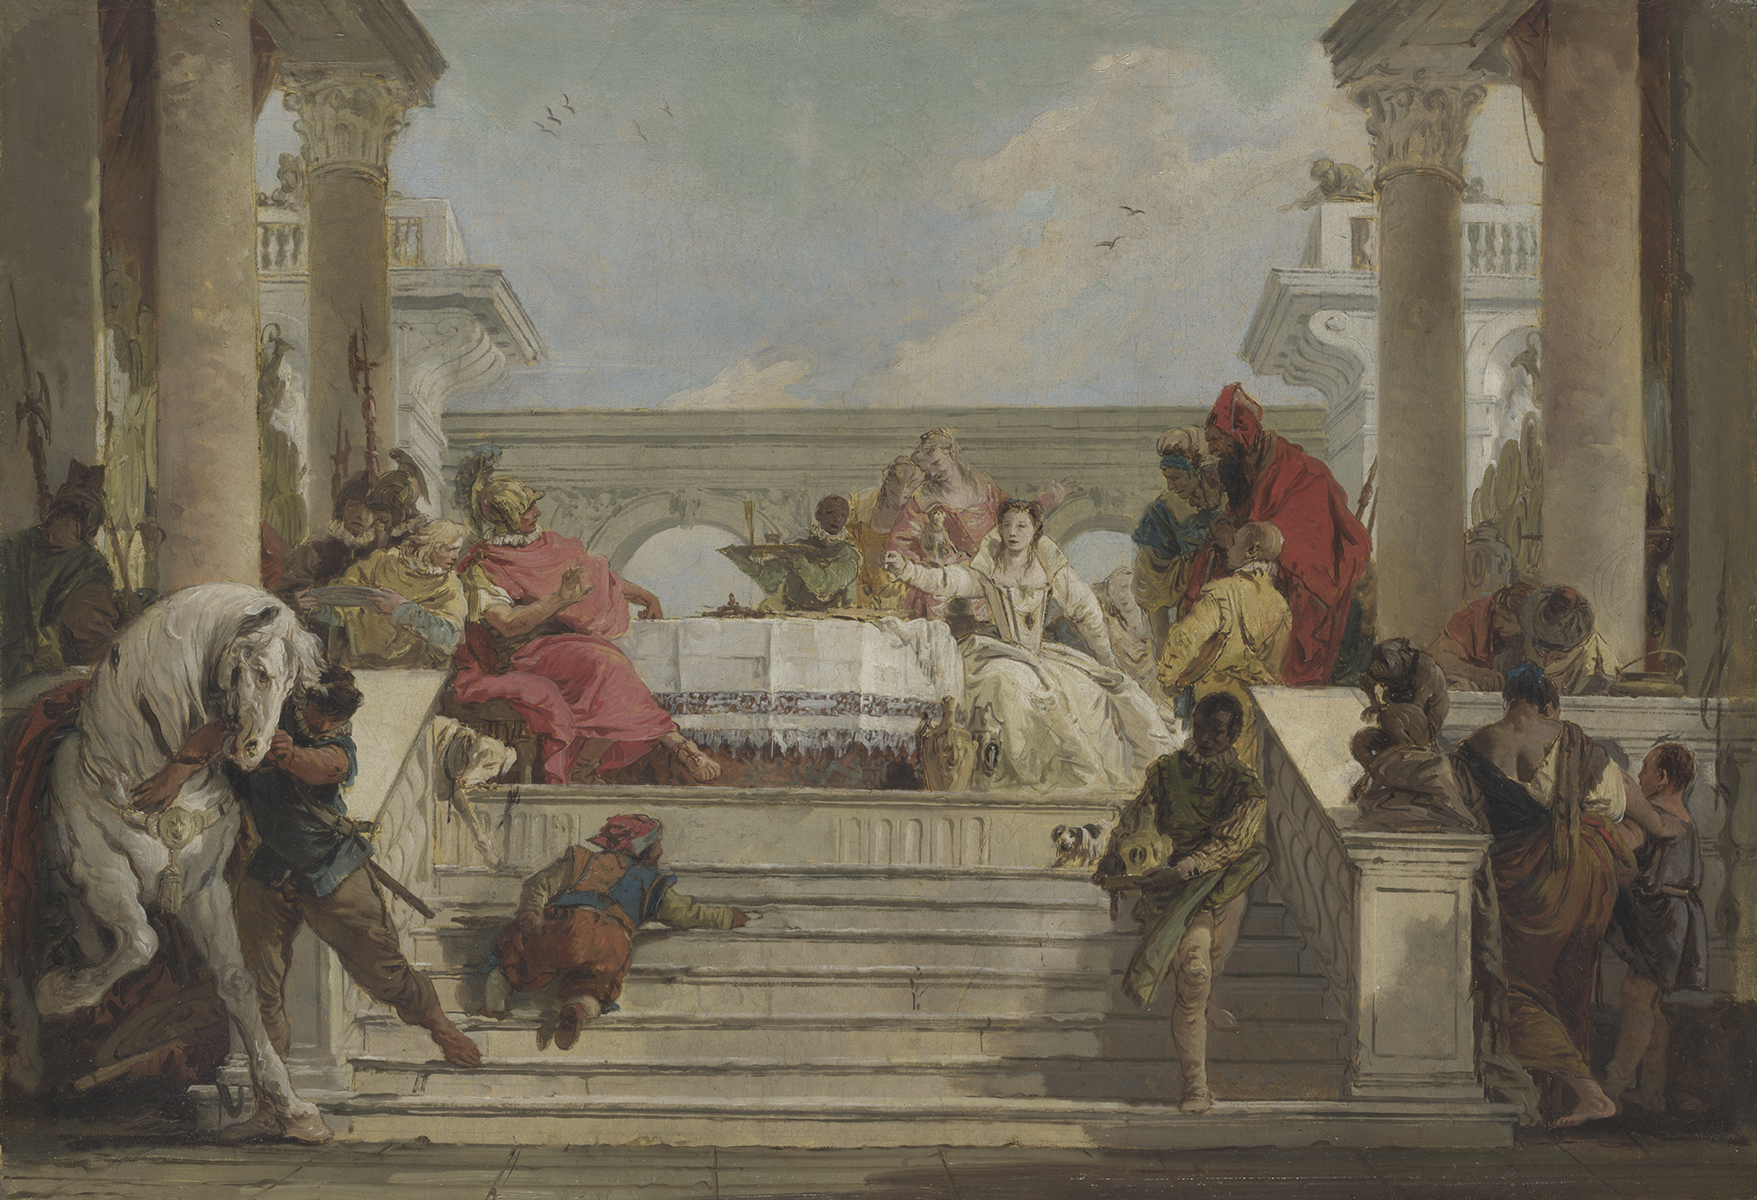 Giambattista Tiepolo Il banchetto di Cleopatra, 1696-1770 olio su tela, 46,30 x 66,70 cm Londra, The National Gallery © The National Gallery, London. Presented by the Misses Rachel F. and Jean I. Alexander; entered the collection, 1972